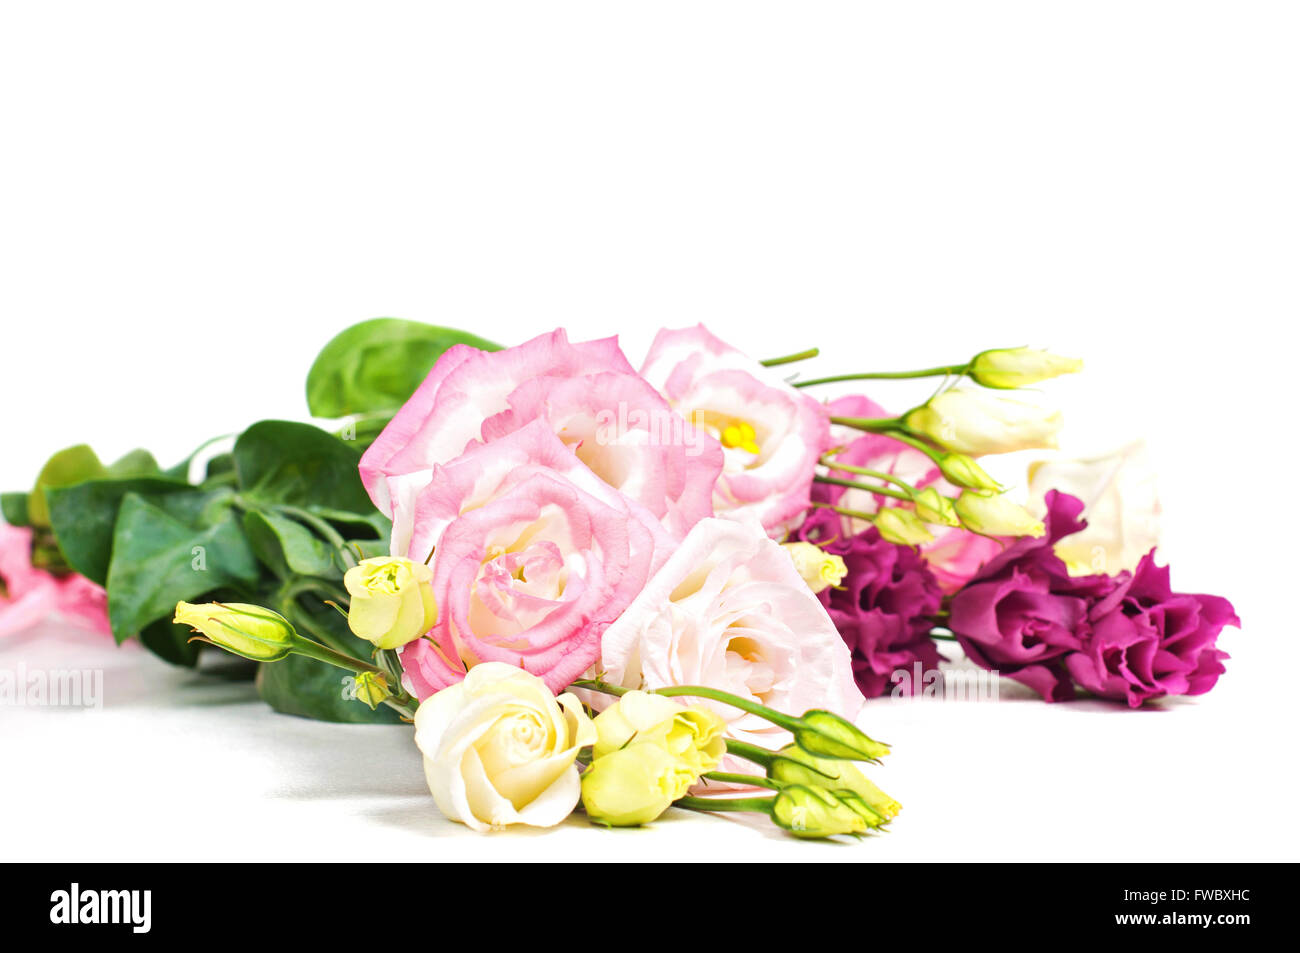 Beautiful lisianthus bouquet on the lihgt backgroung - Stock Image